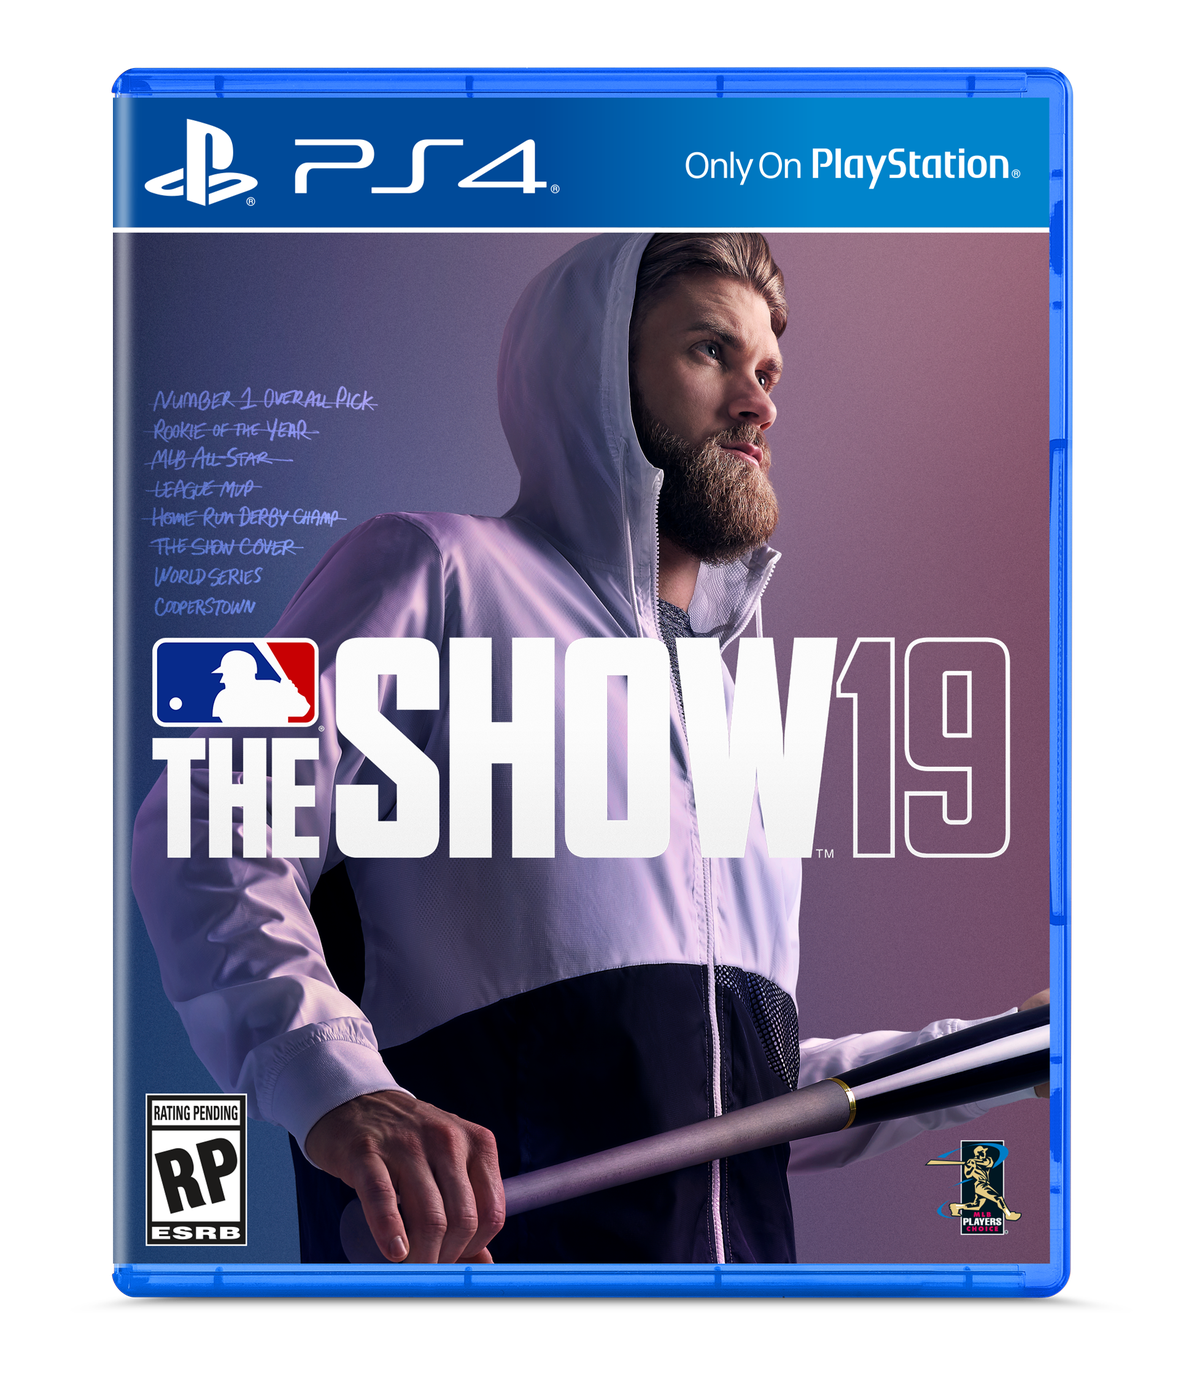 MLB The Show 19 placeholder cover with Bryce Harper in a hoodie holding a bat